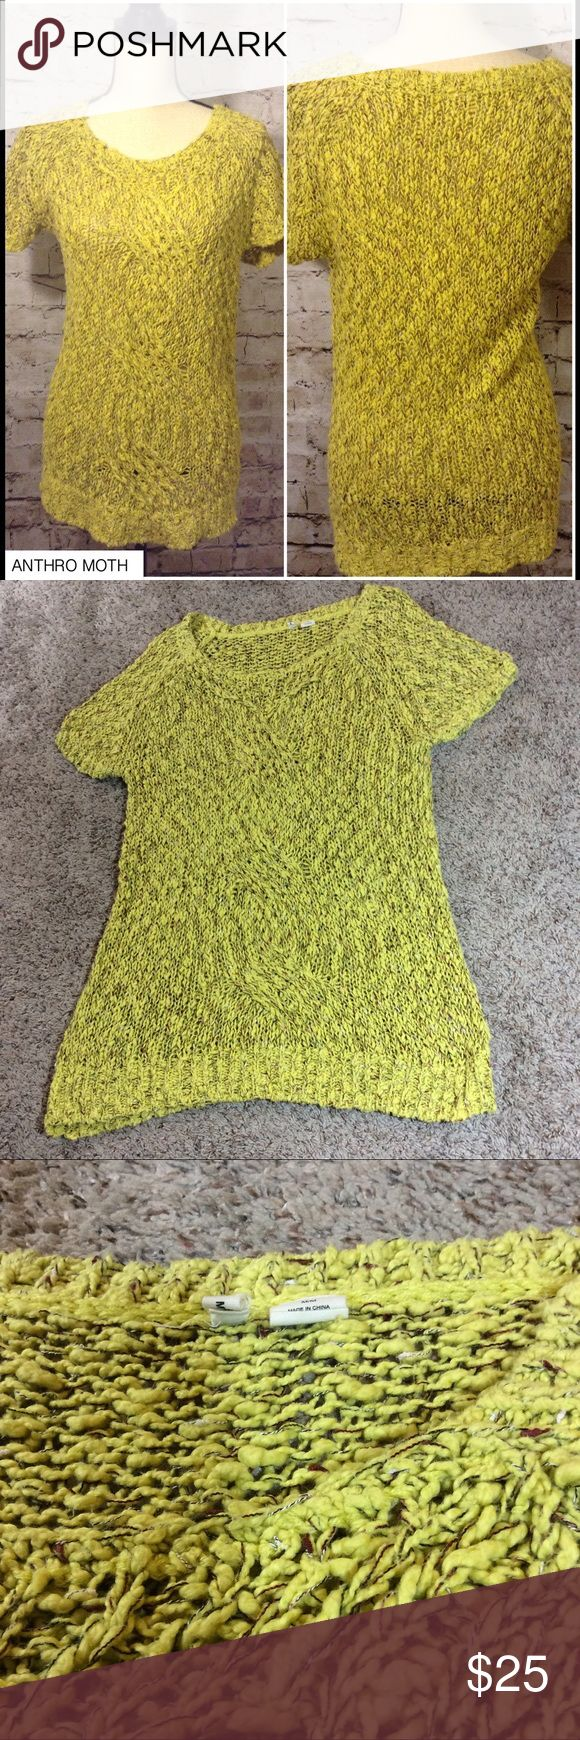 "Anthropologie moth chunky knit sweater Moth for anthropologie chunky knit sweater   Yellow   Size medium   Short sleeve   Approx measurements laying flat:  Pit to pit 19""  Top of shoulder to bottom hem 29""   Gently used Anthropologie Sweaters"